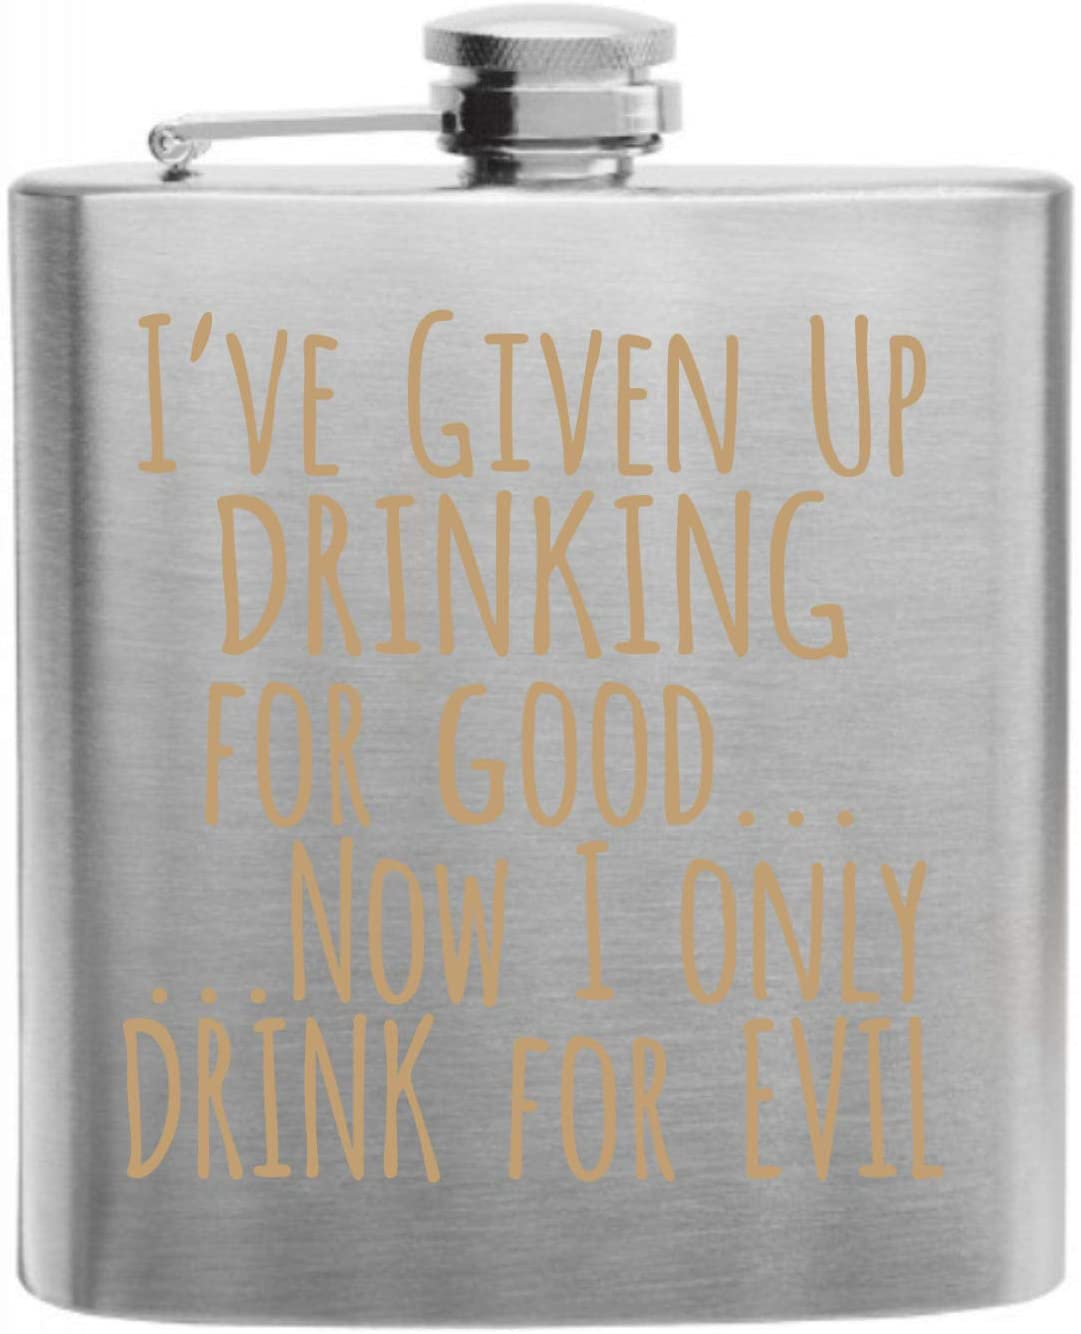 Ive Given Up Drinking Custom Printed Stainless Steel Alcohol Hip Flask, 6 Oz. Stainless Steel